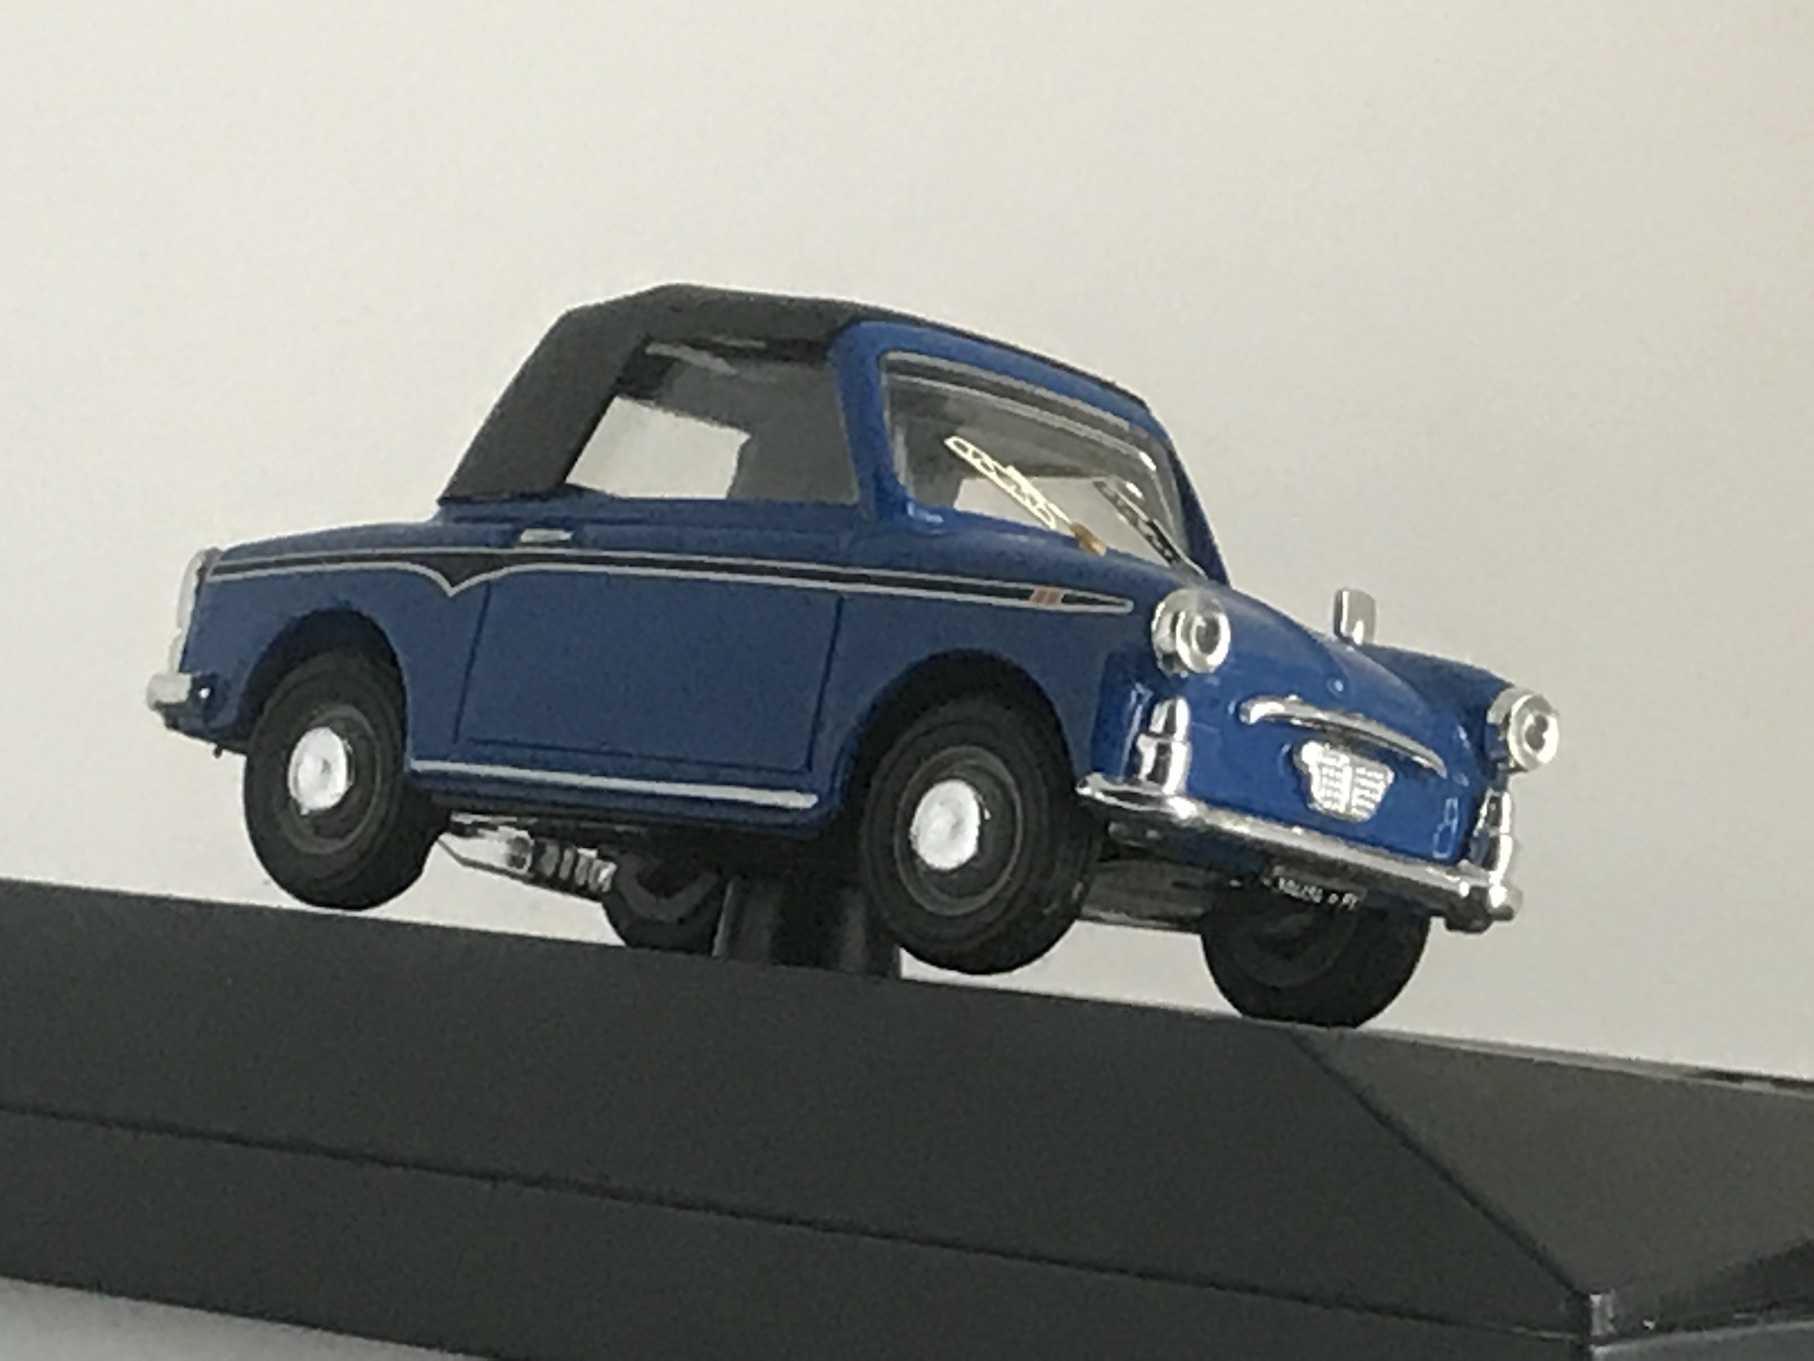 AUTOBIANCHI BIANCHINA CONVERTIBILE SOFT TOP 1957 【1/43】【PROGETTOK、MADE IN ITALY】